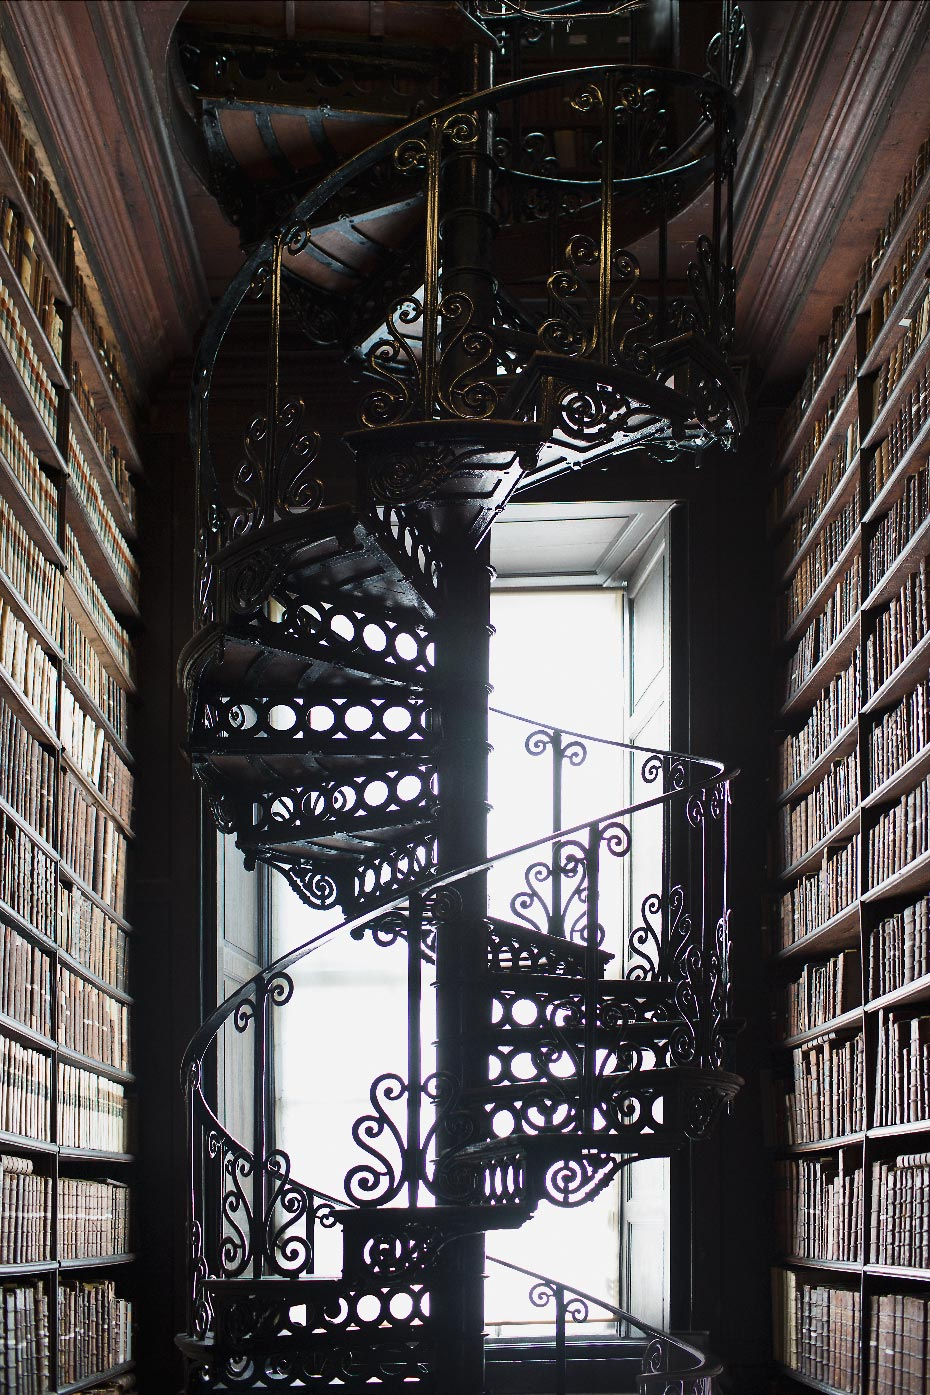 Stacey Van Berkel Photography I Stunning Ornate Spiral Staircase I Trinity College LIbrary I Dublin, Ireland